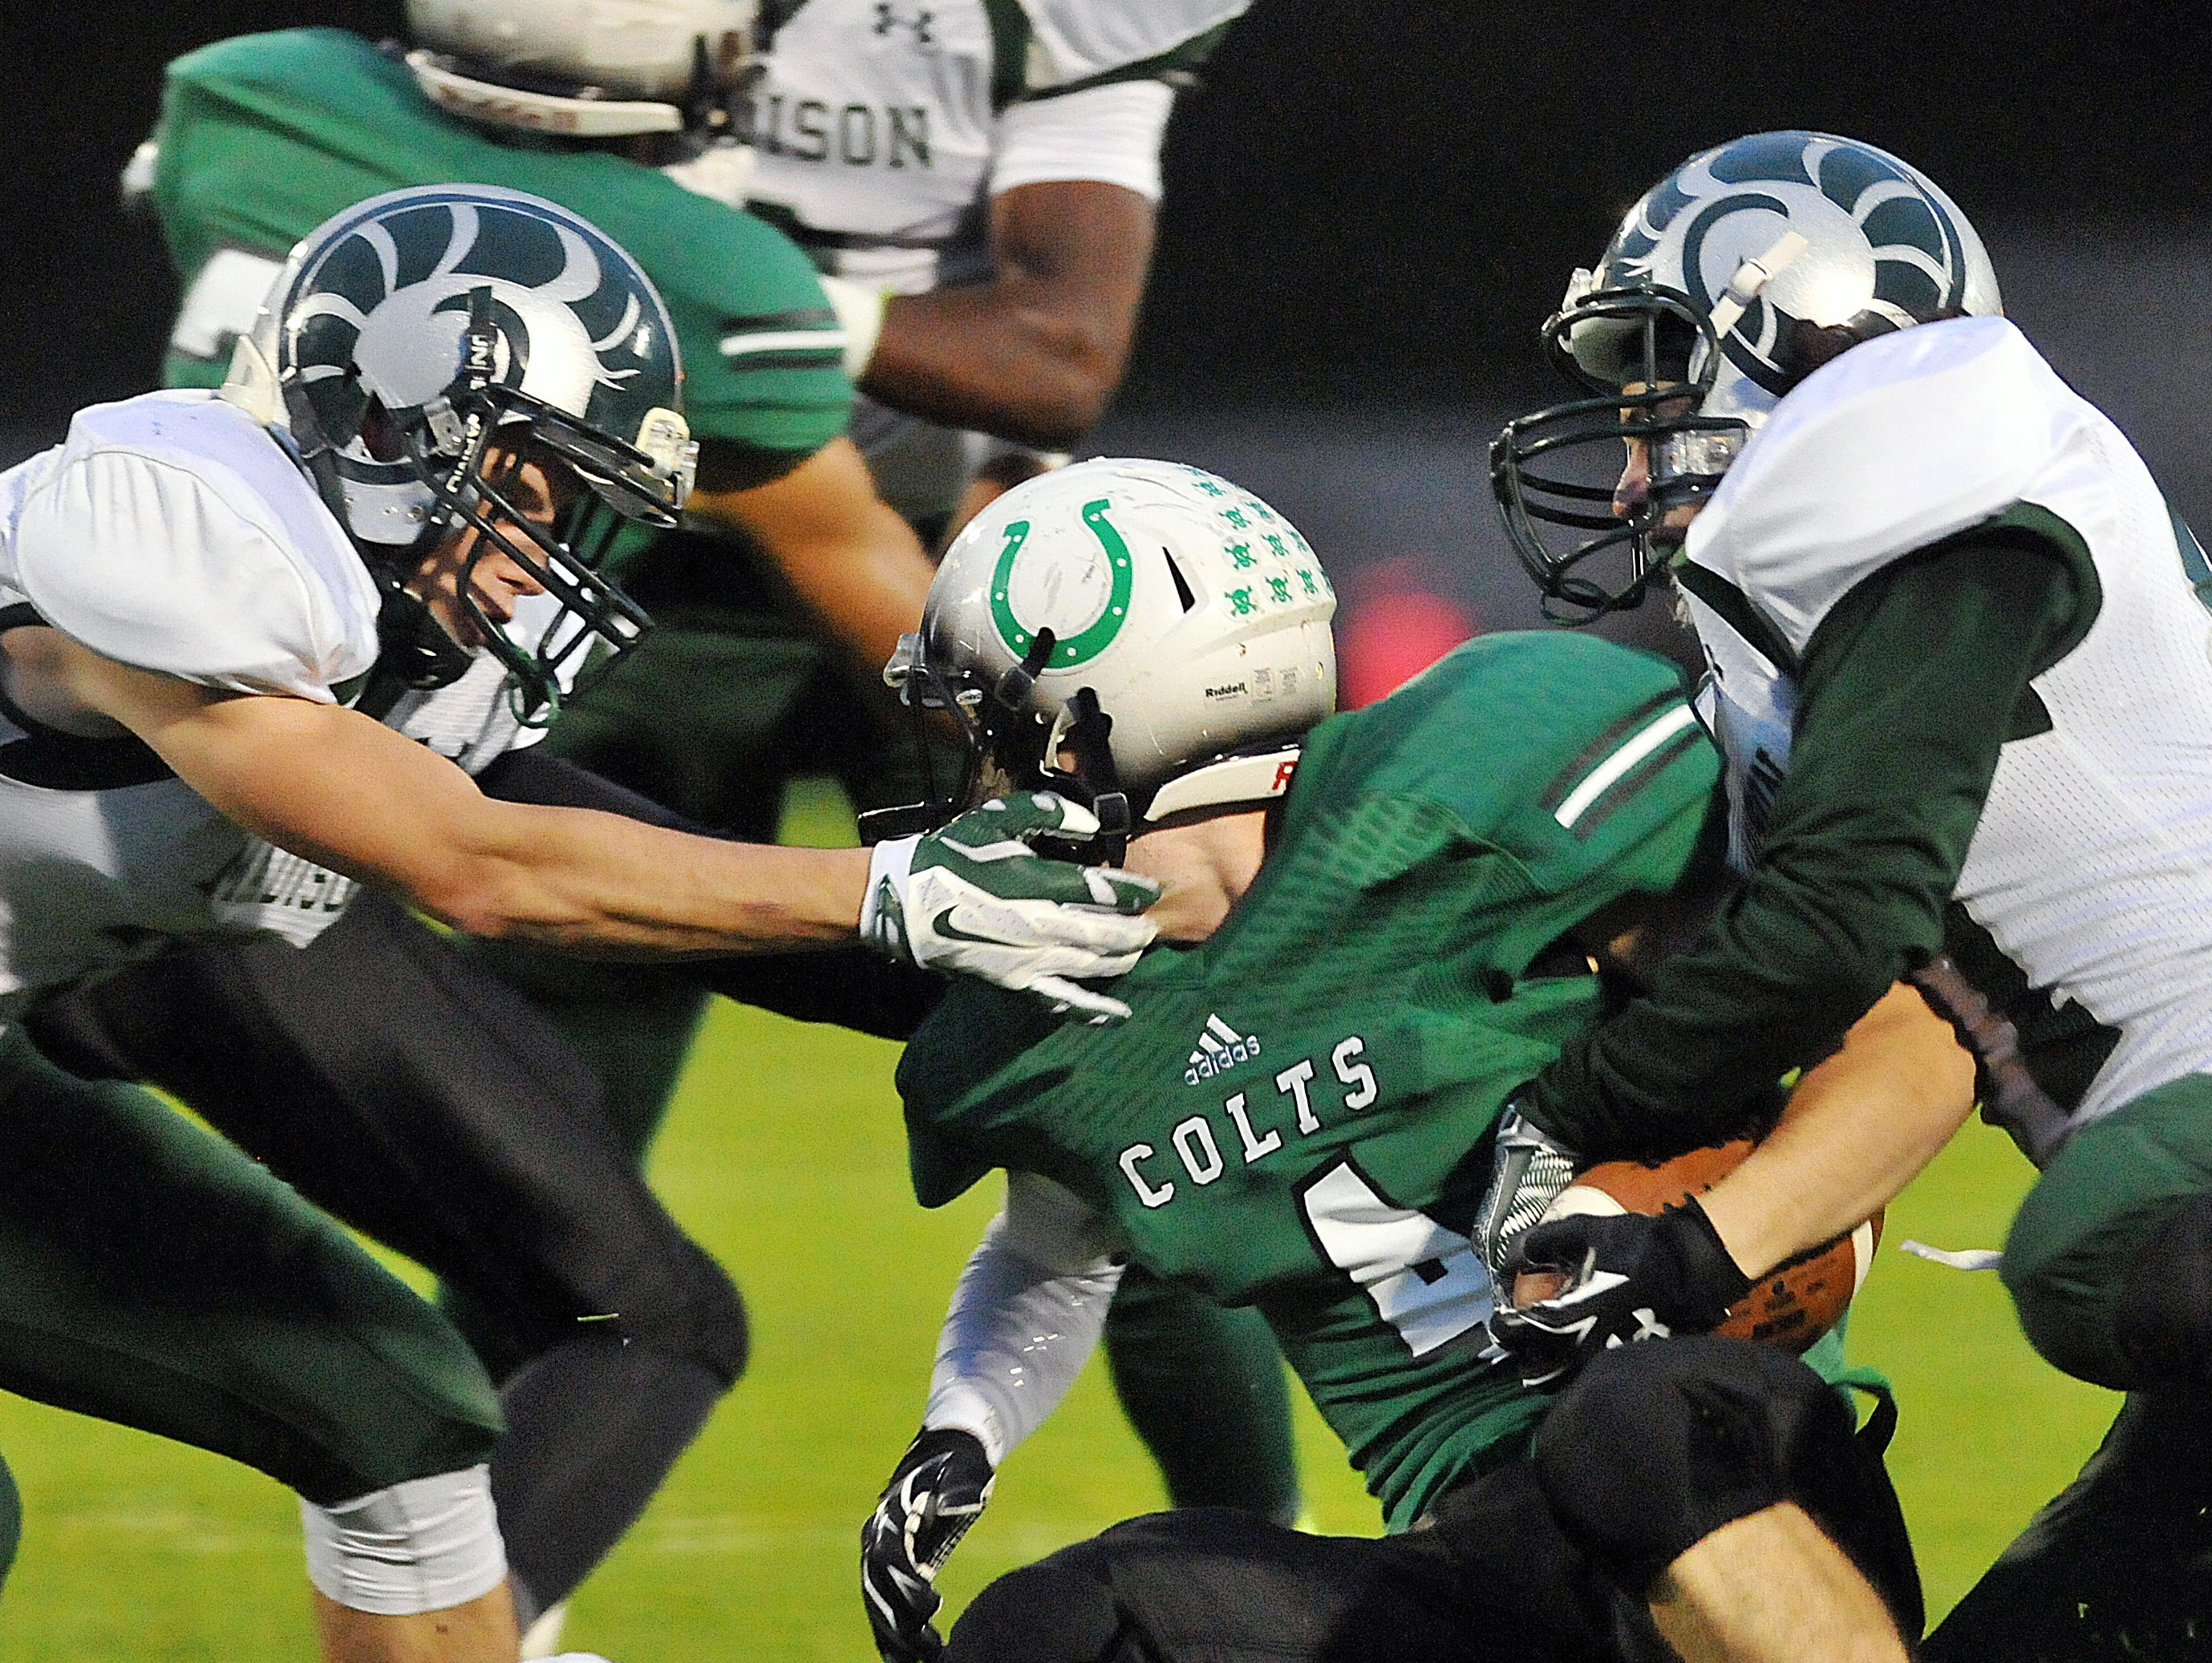 Clear Fork's Mason Buck gets wrapped up by Madison defenders during their game Friday night at Clear Fork.